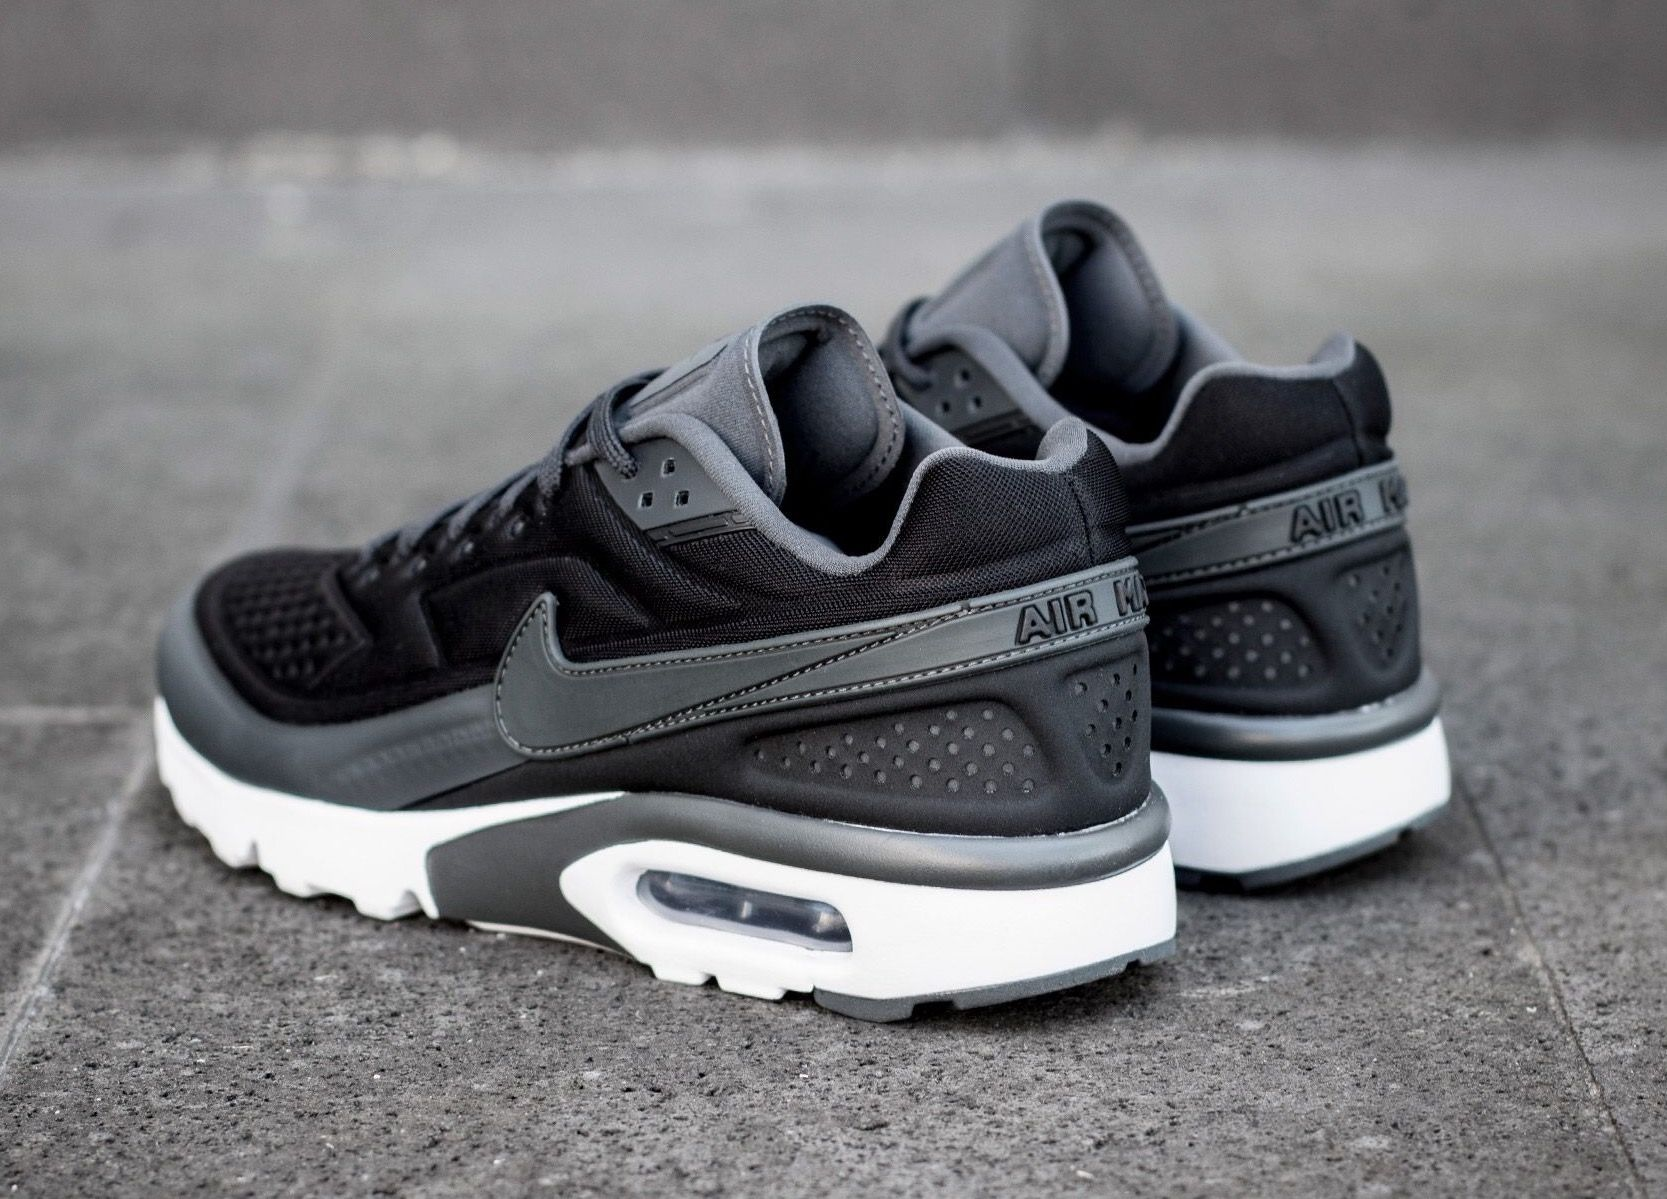 61319b0abb Nike Air Classic BW Ultra: Black/Grey | airmax sneakers | Sneakers ...